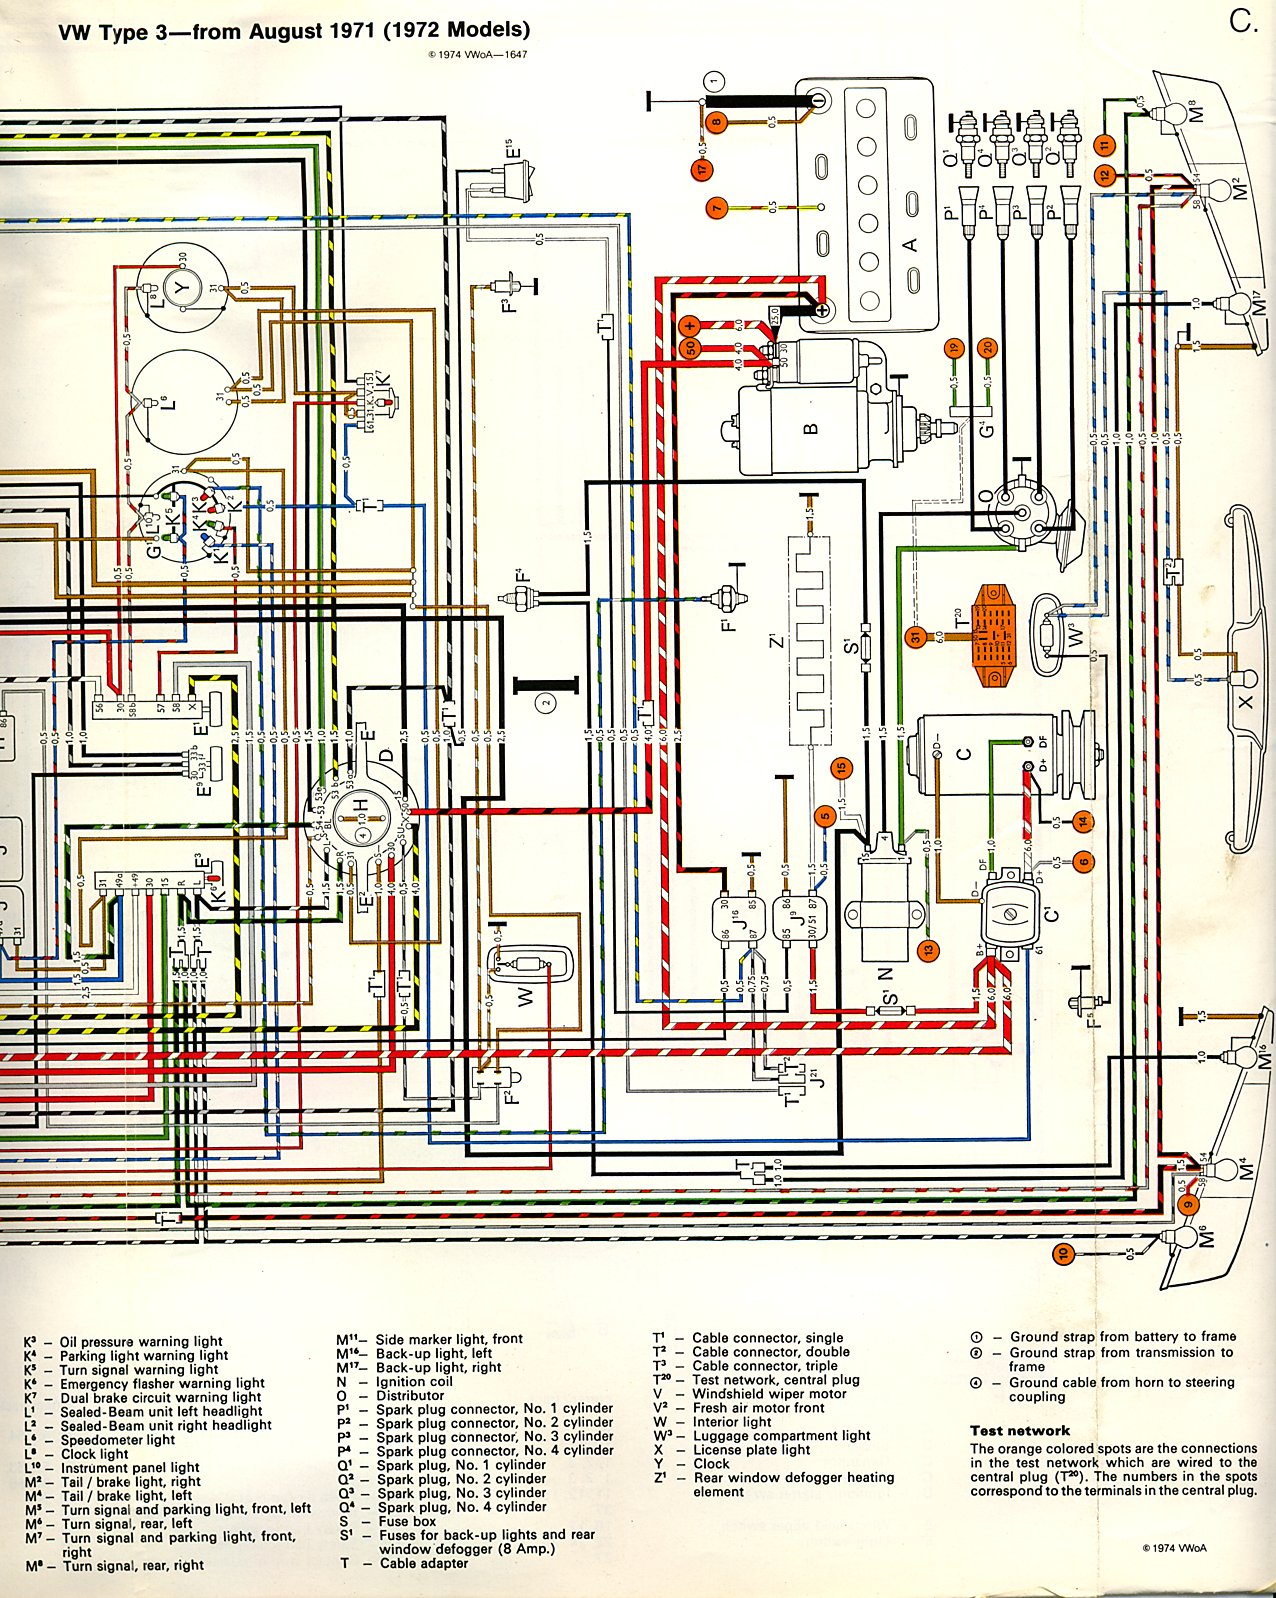 Vw Type 3 Wiring Diagram Free For You 68 Beetle Flasher Download Thesamba Com Diagrams Rh Volkswagen